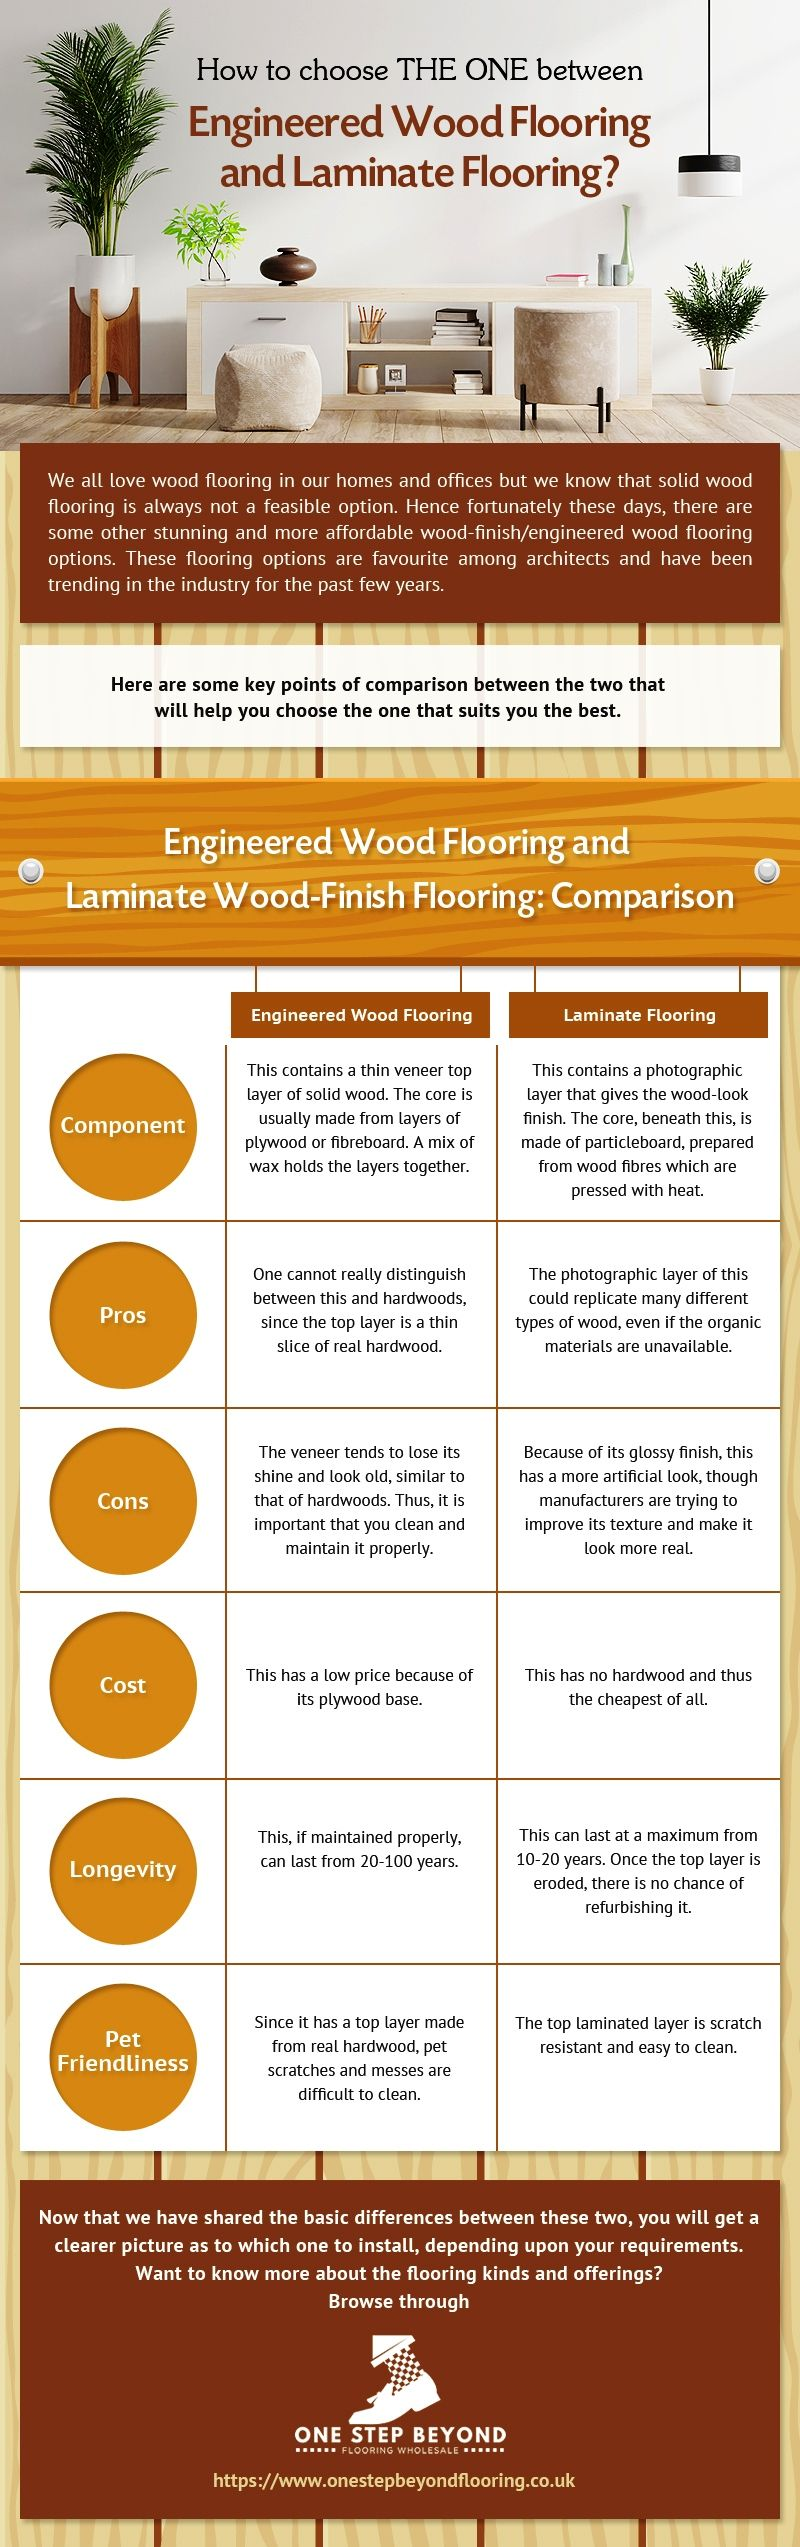 Comparison Between Engineered Wood Flooring and Laminate Flooring